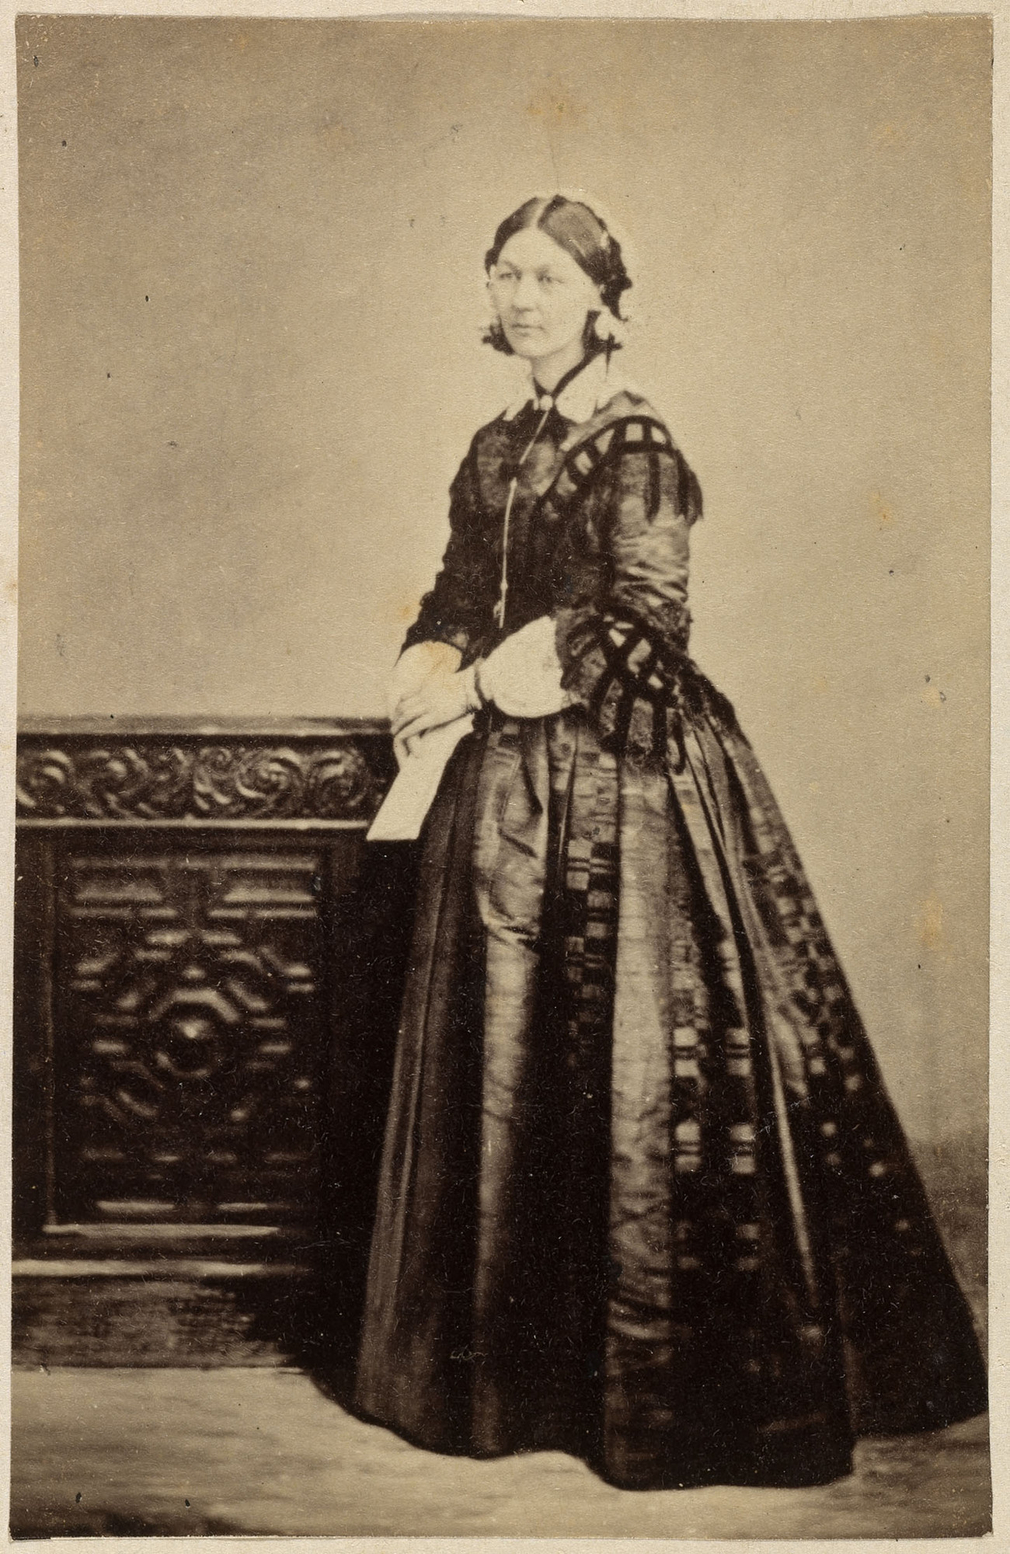 Carte-de-visite of Florence Nightingale standing facing partly left holding a letter. An engraved wooden chest stands to the left.<br /><br />Queen Victoria admired the work done by Florence Nightingale to improve nursing dur